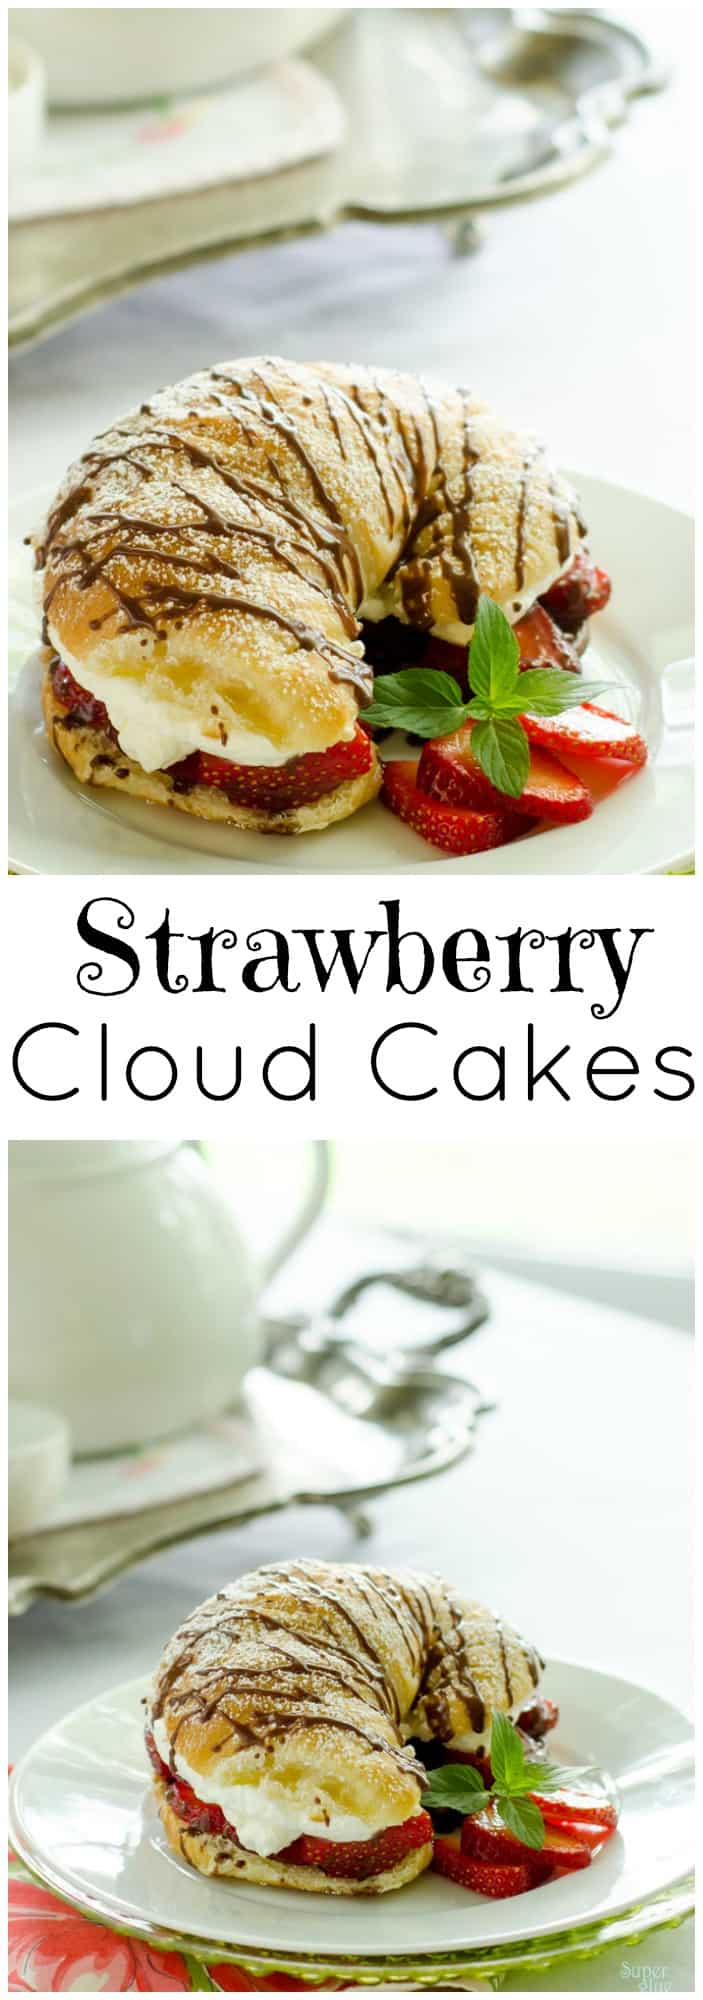 These Strawberry Cloud Cakes recipe is simple, delicious and French-bakery worthy! Be prepared to indulge.